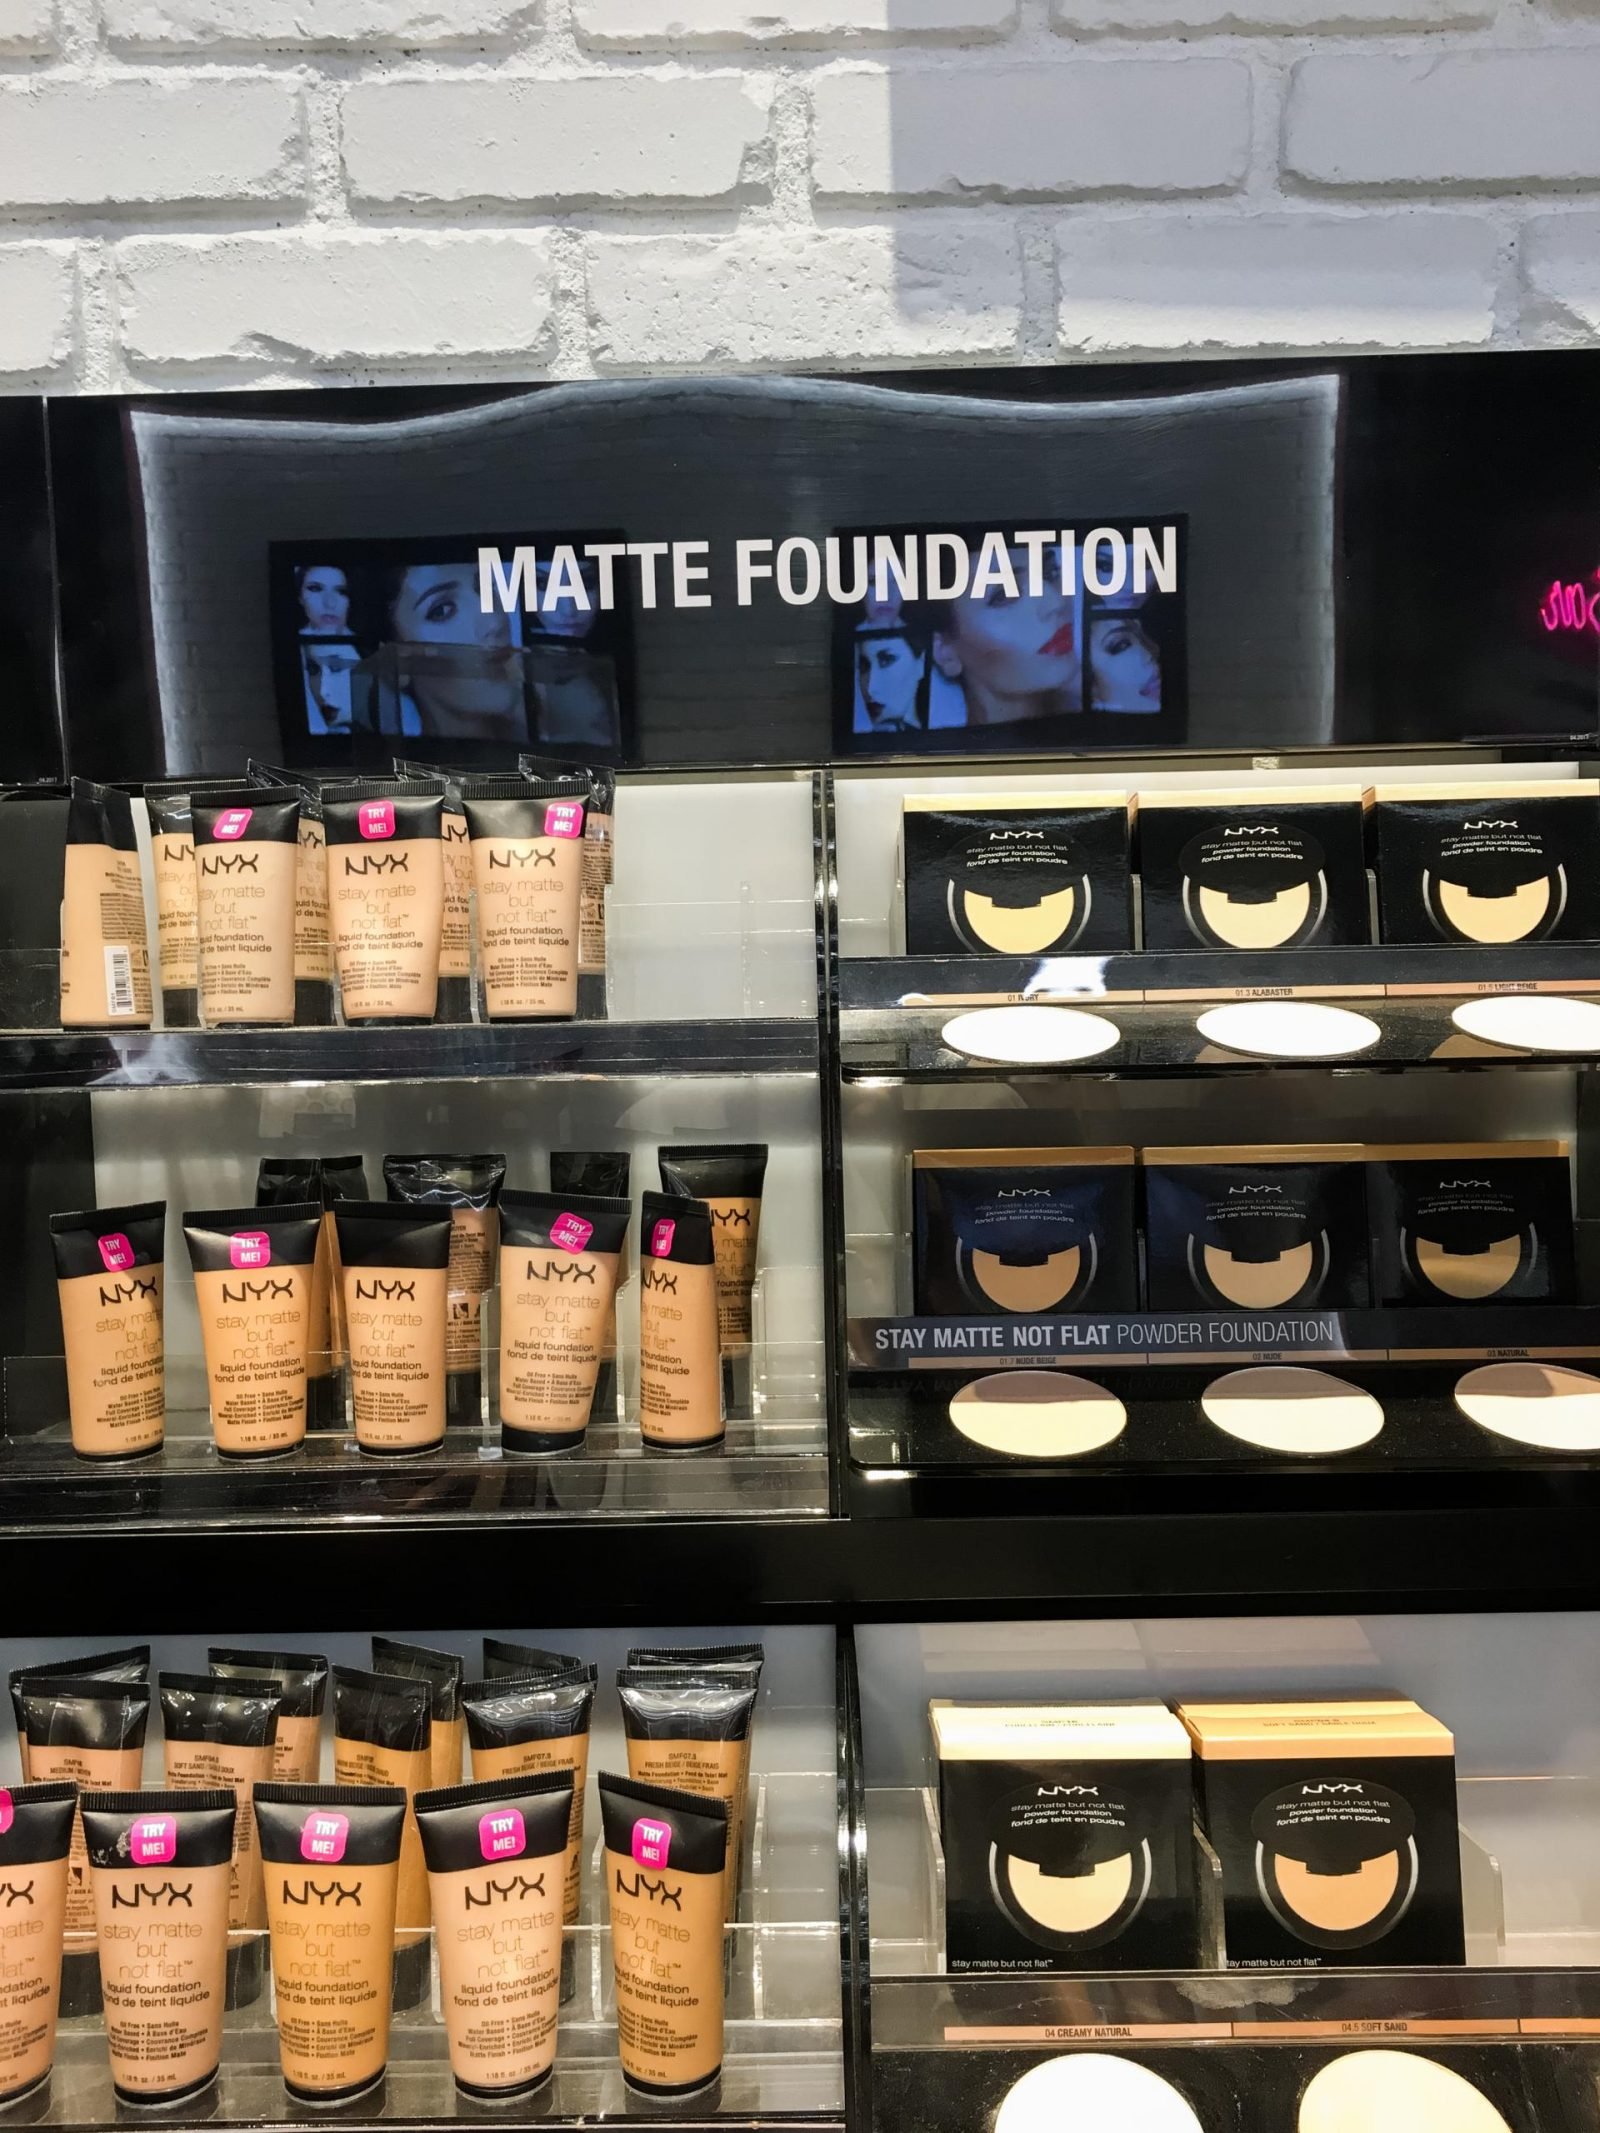 My favorite Matte Foundation at NYX Makeup at Woodfield Mall. The Best Woodfield Mall Stores in Schaumburg Illinois. Woodfield Mall is one of the biggest malls in America, let me help you decide where to stop first!